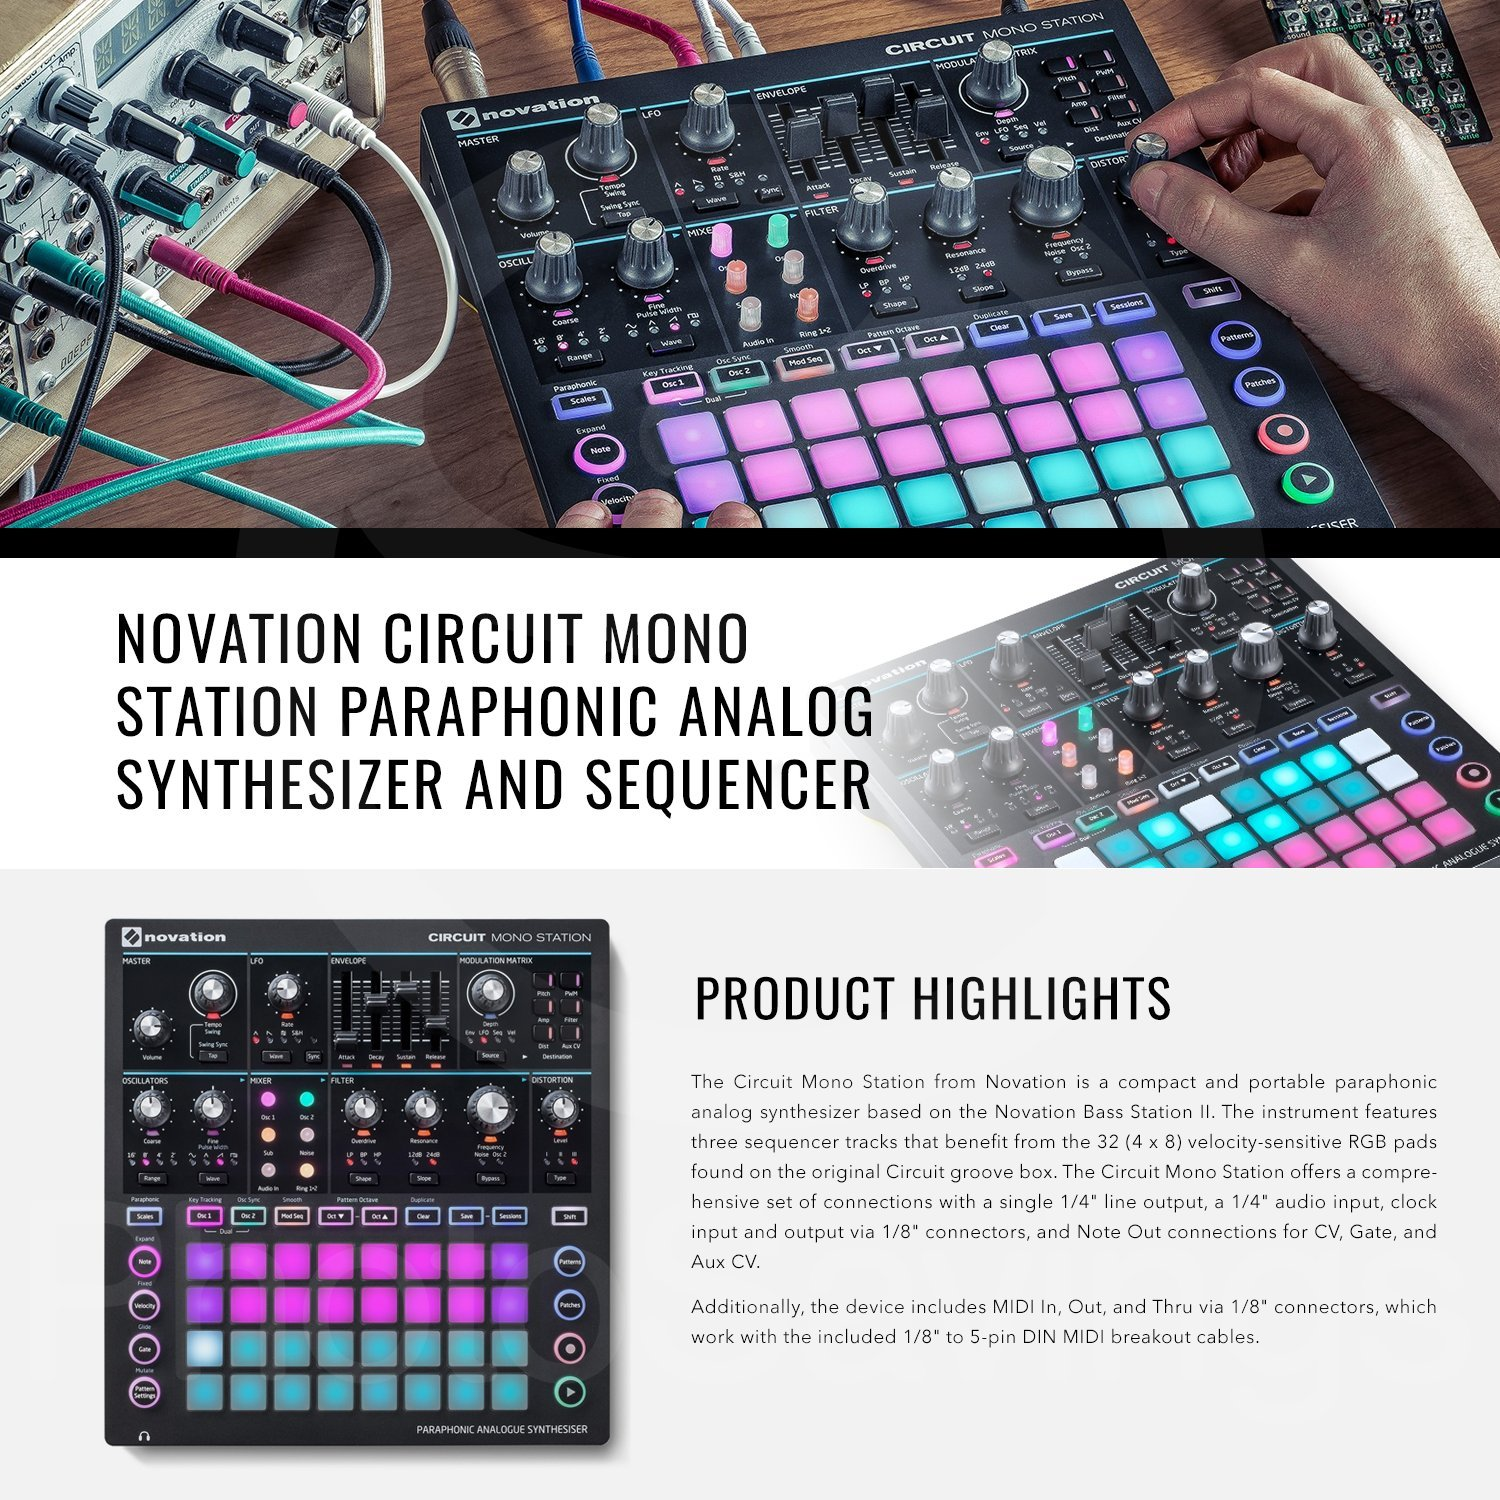 Novation Circuit Mono Station Paraphonic Analog Synthesizer and Sequencer with Basic Accessory Bundle by Photo Savings (Image #2)